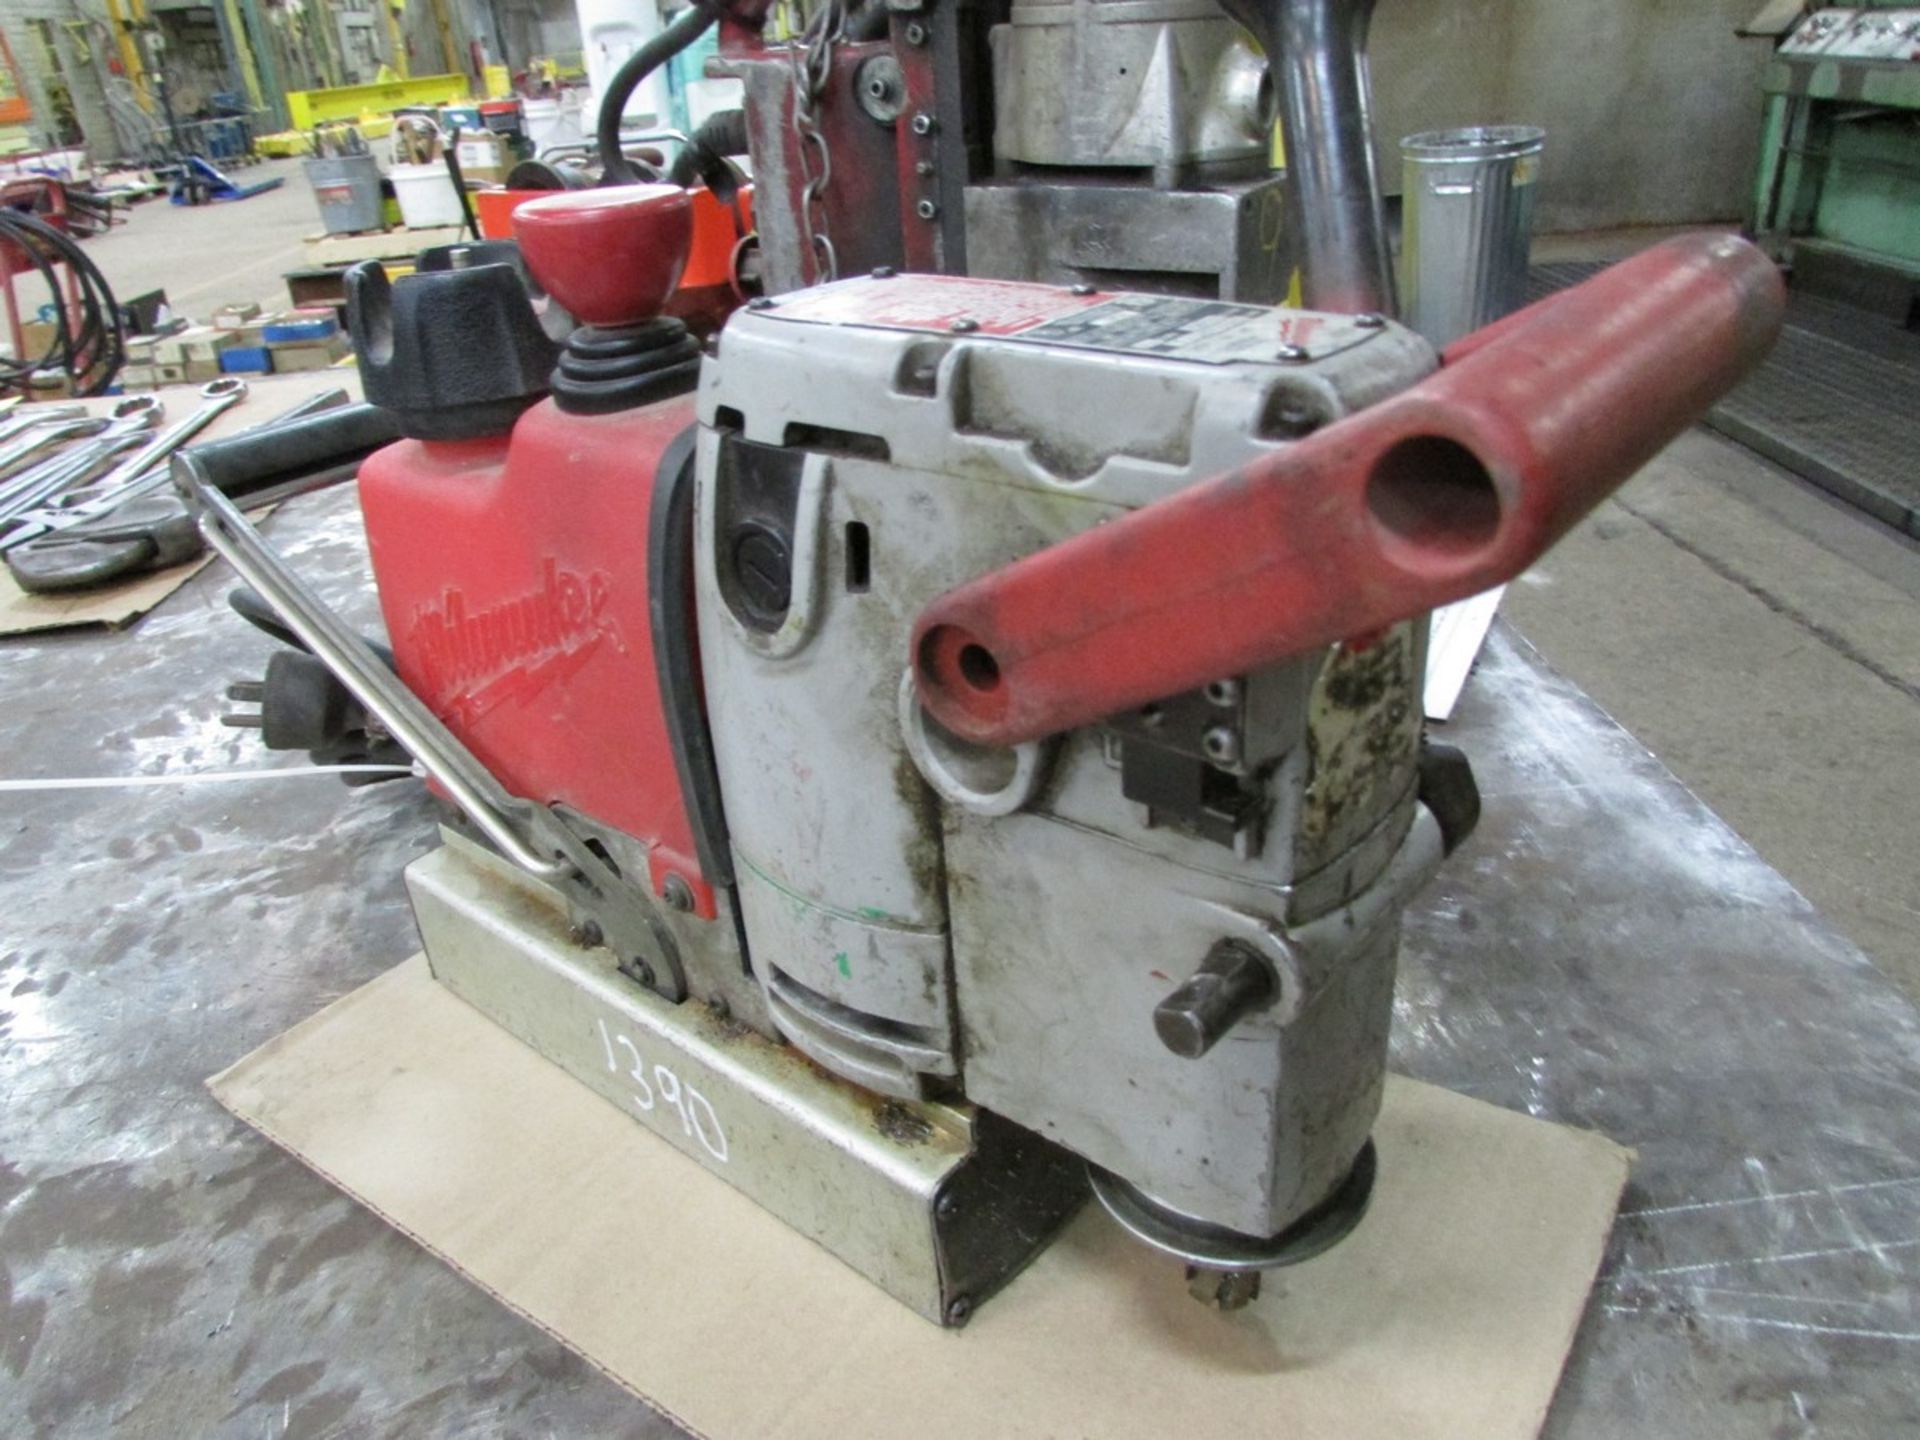 Milwaukee 4245 Steel Hawg magnetic drill, 110V - Image 3 of 3